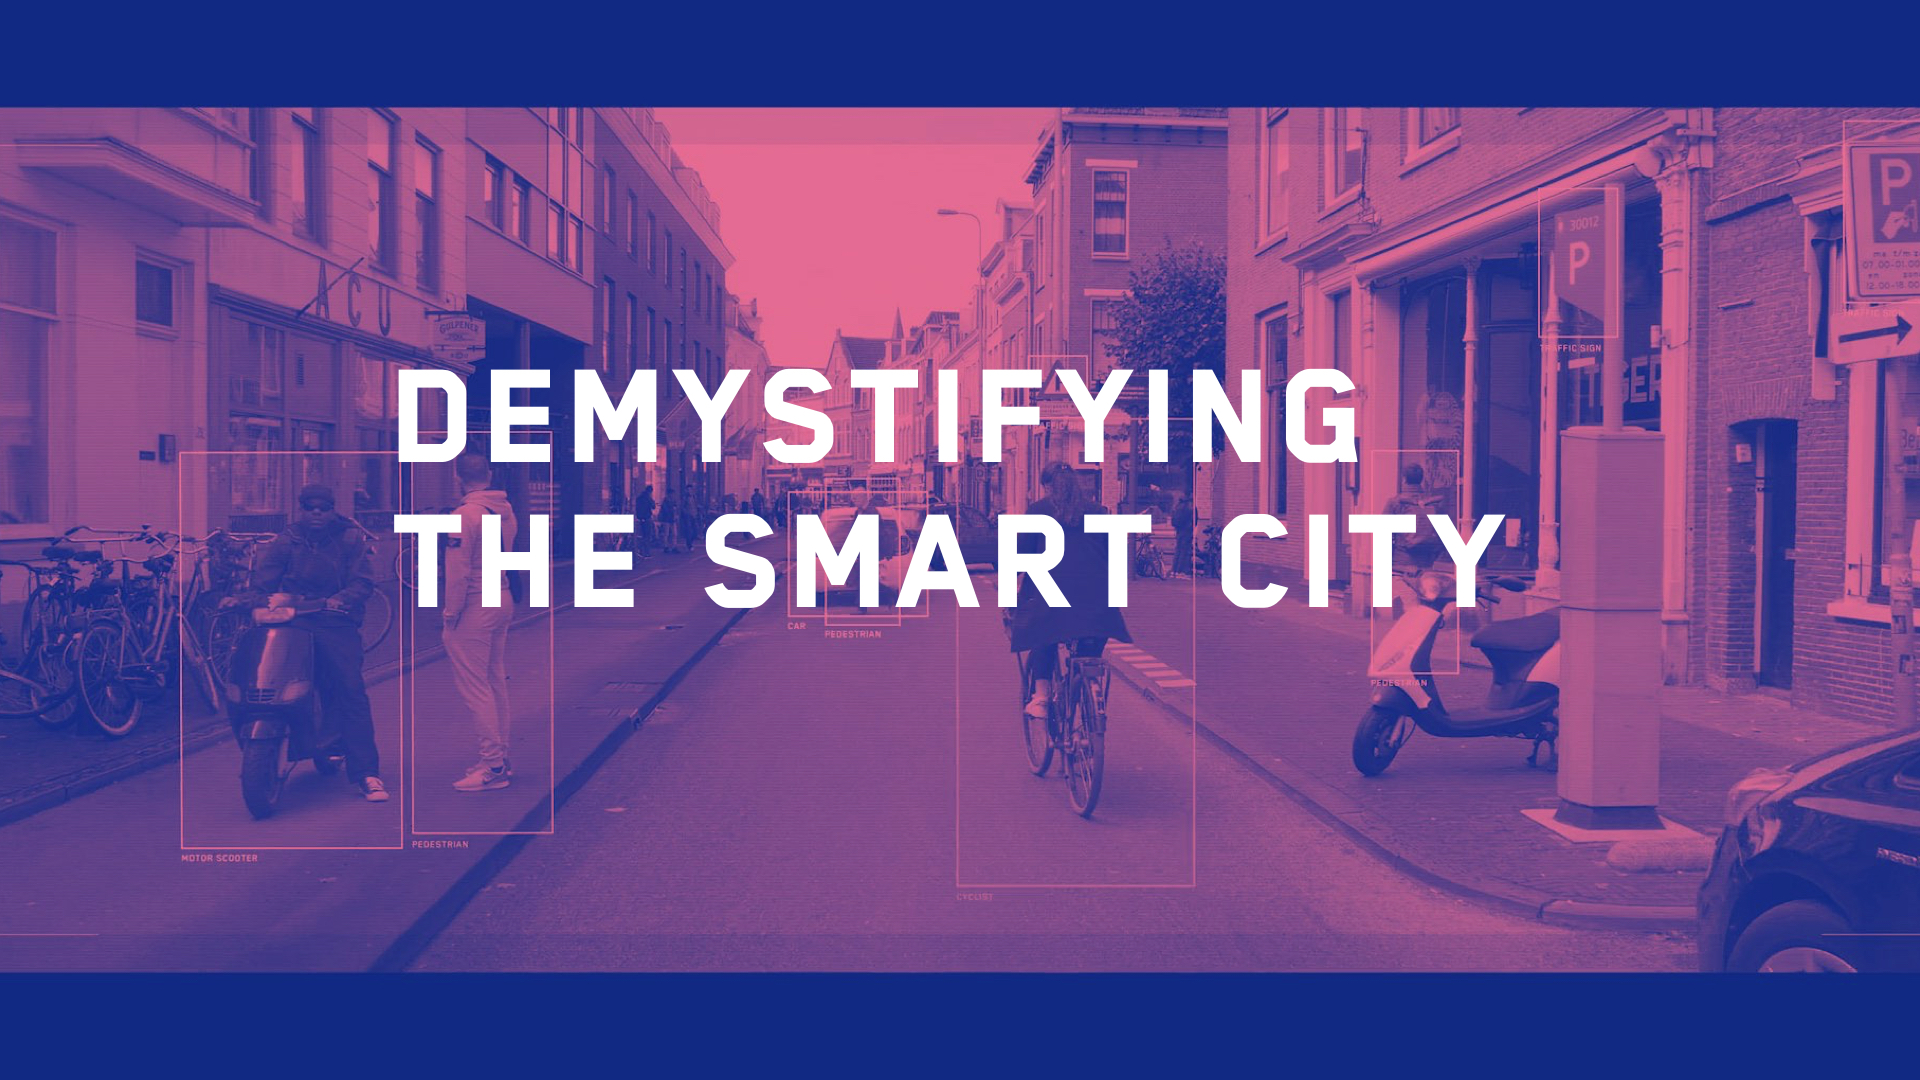 Demystifying the smart city-SL Beeld.jpeg